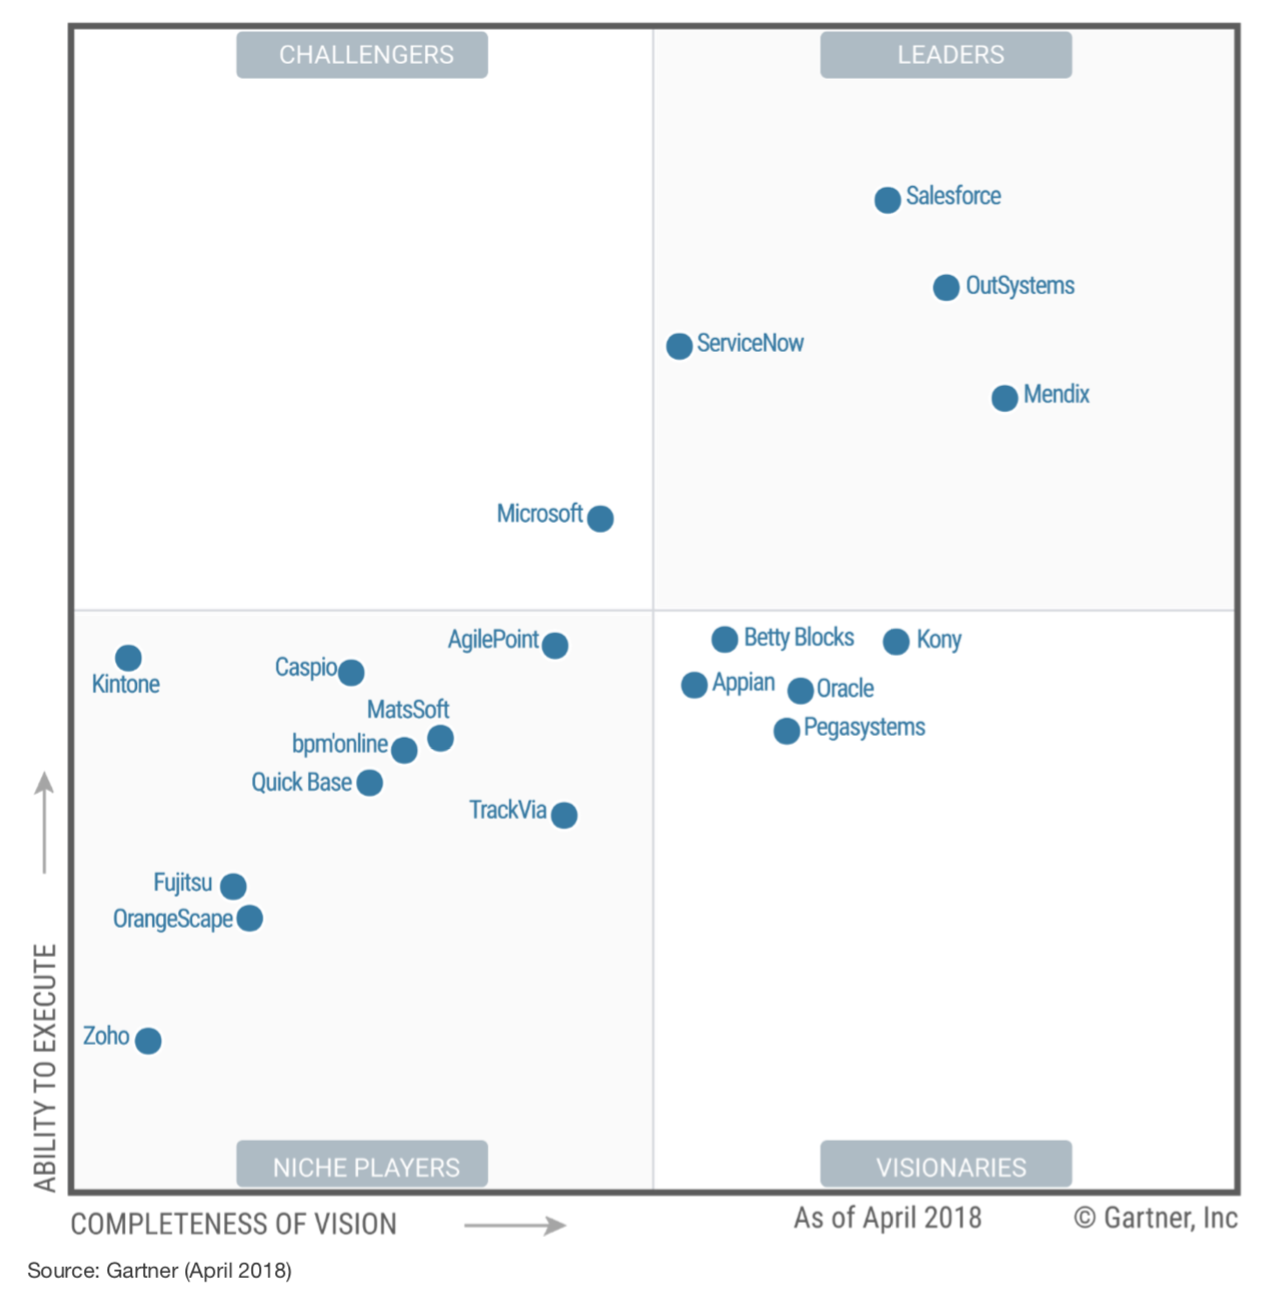 Kintone in 2018 Gartner hpaPaaS Magic Quadrant Report